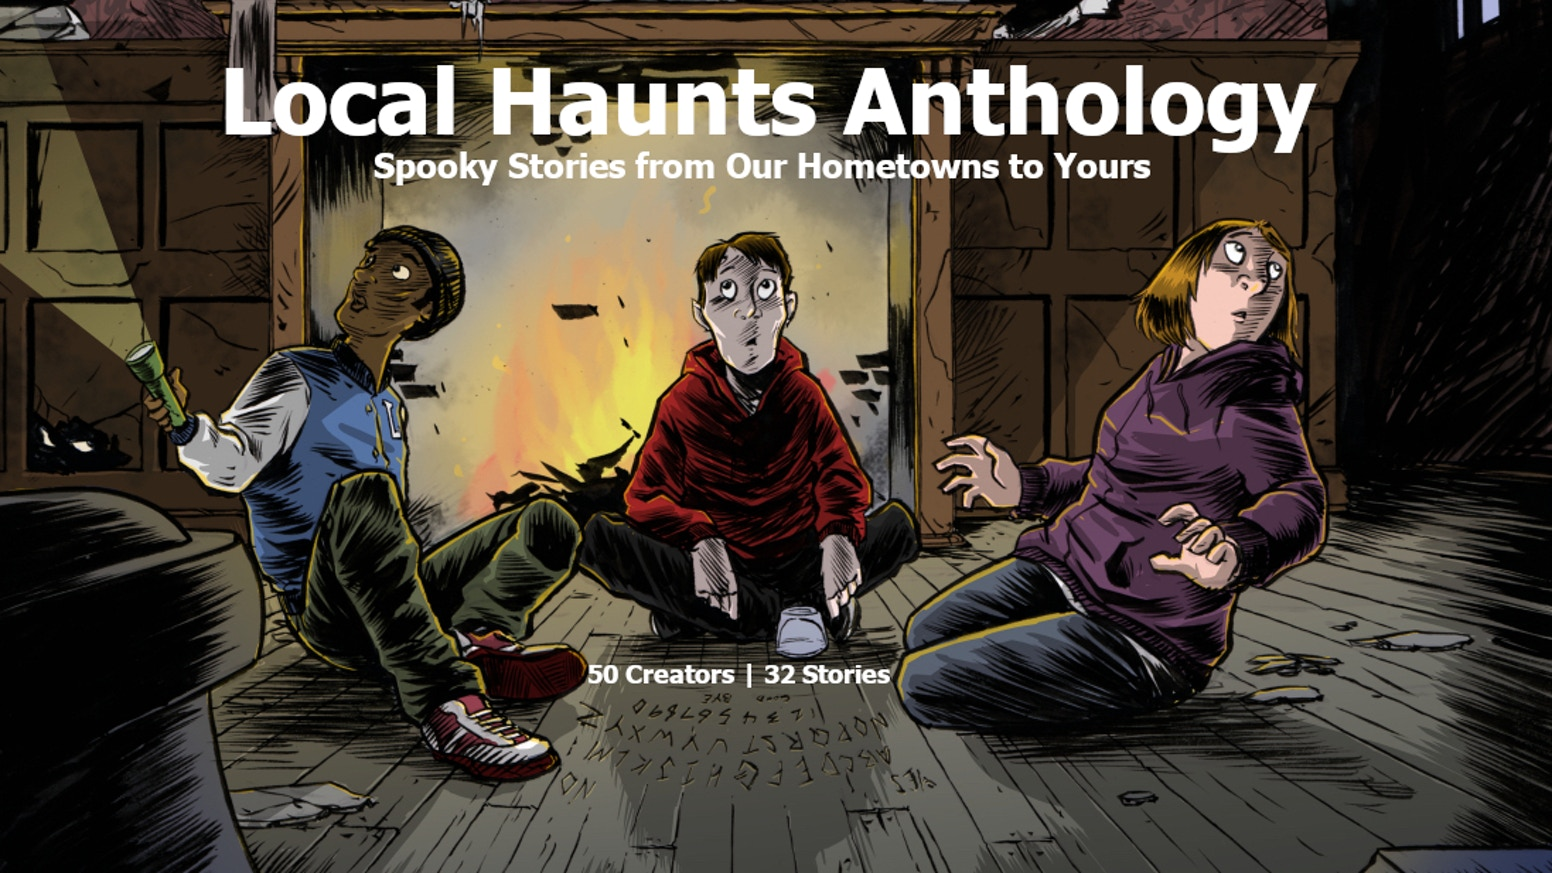 Spooky stories from our hometowns to yours.